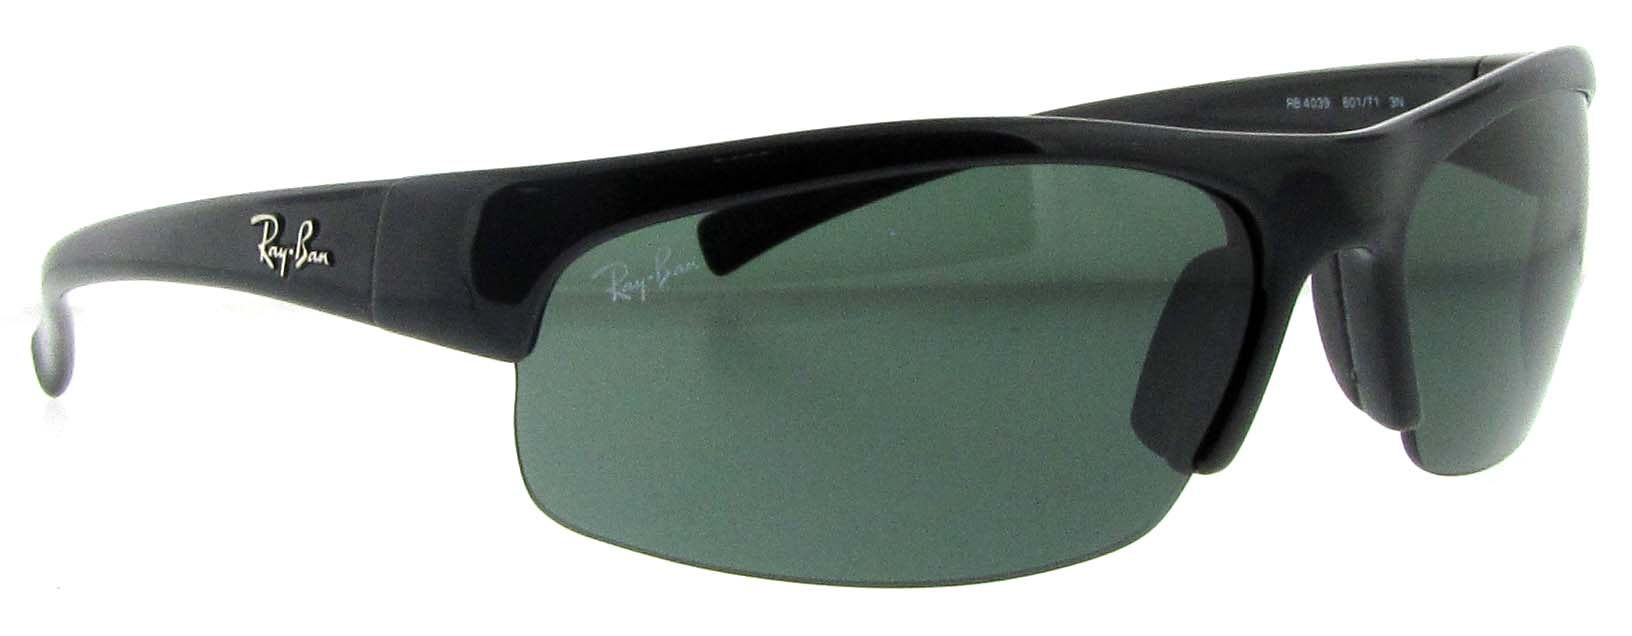 e2bd4c0fb0 Ray Ban Rb4039 Replacement Lenses « Heritage Malta